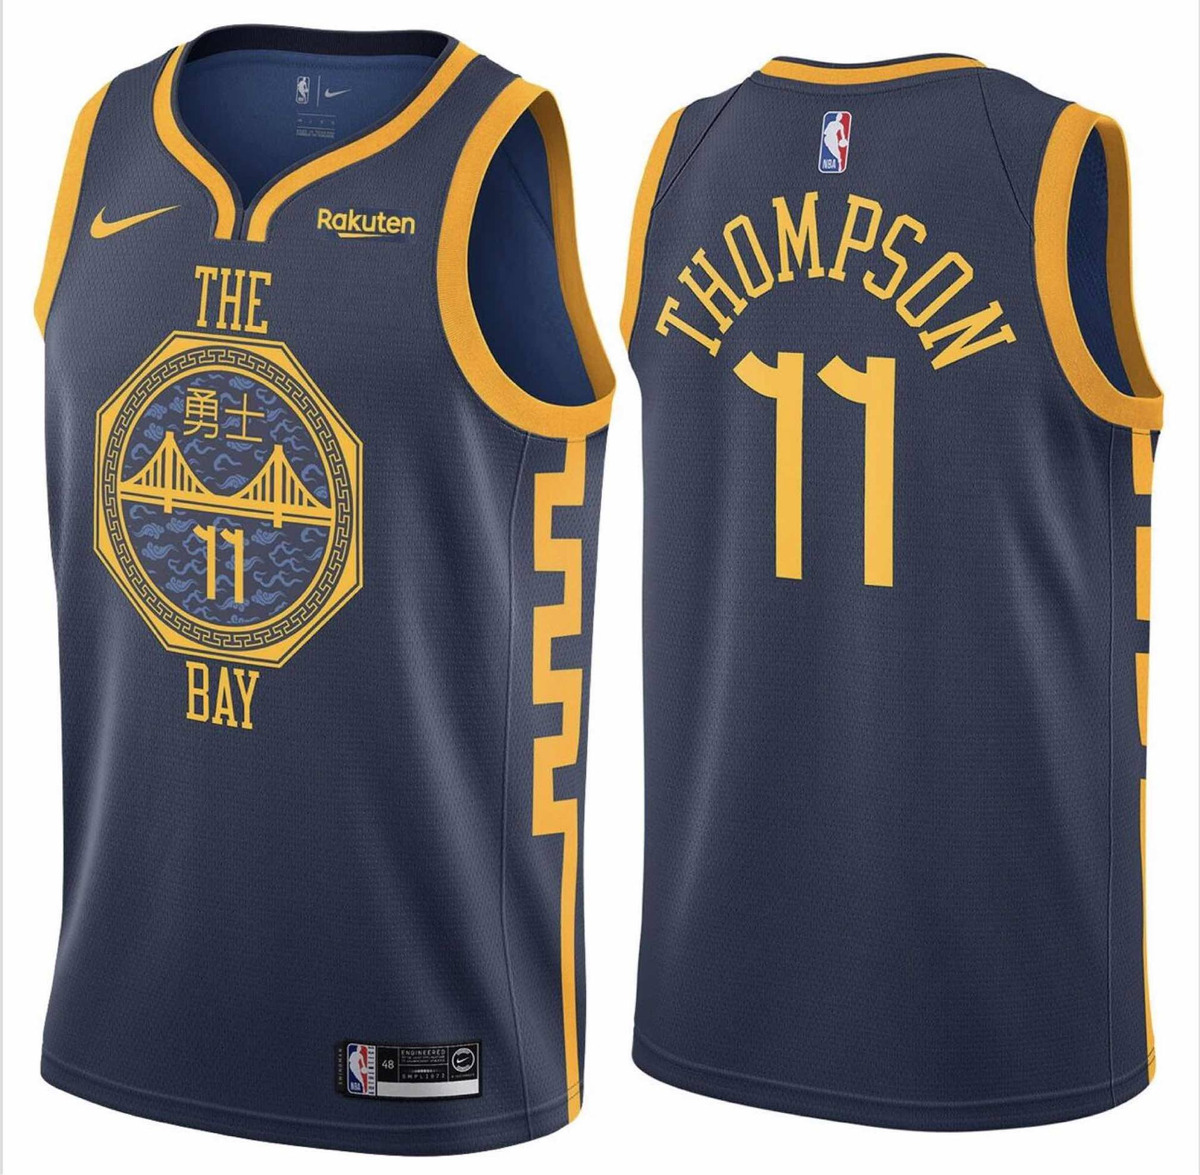 aed44bdc6 camisa golden state warriors city edition. Carregando zoom.